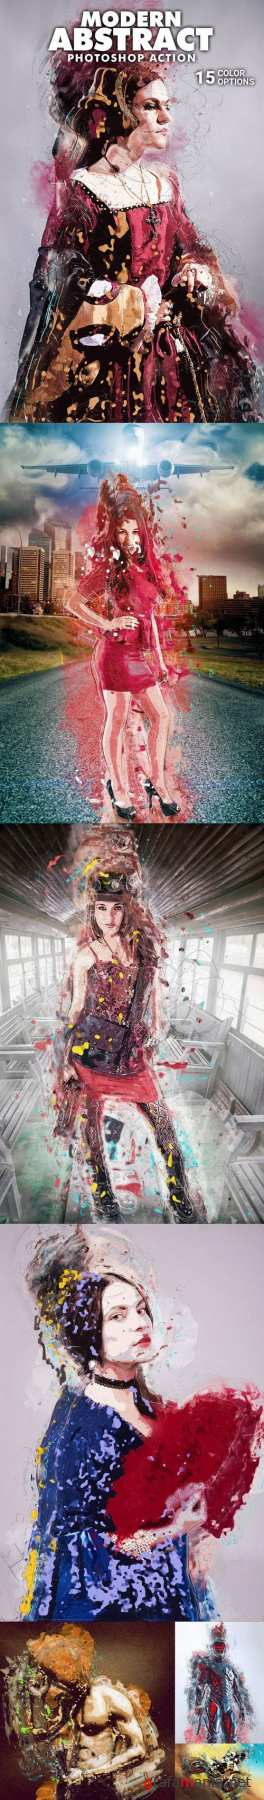 Graphicriver  – modern abstract photoshop action